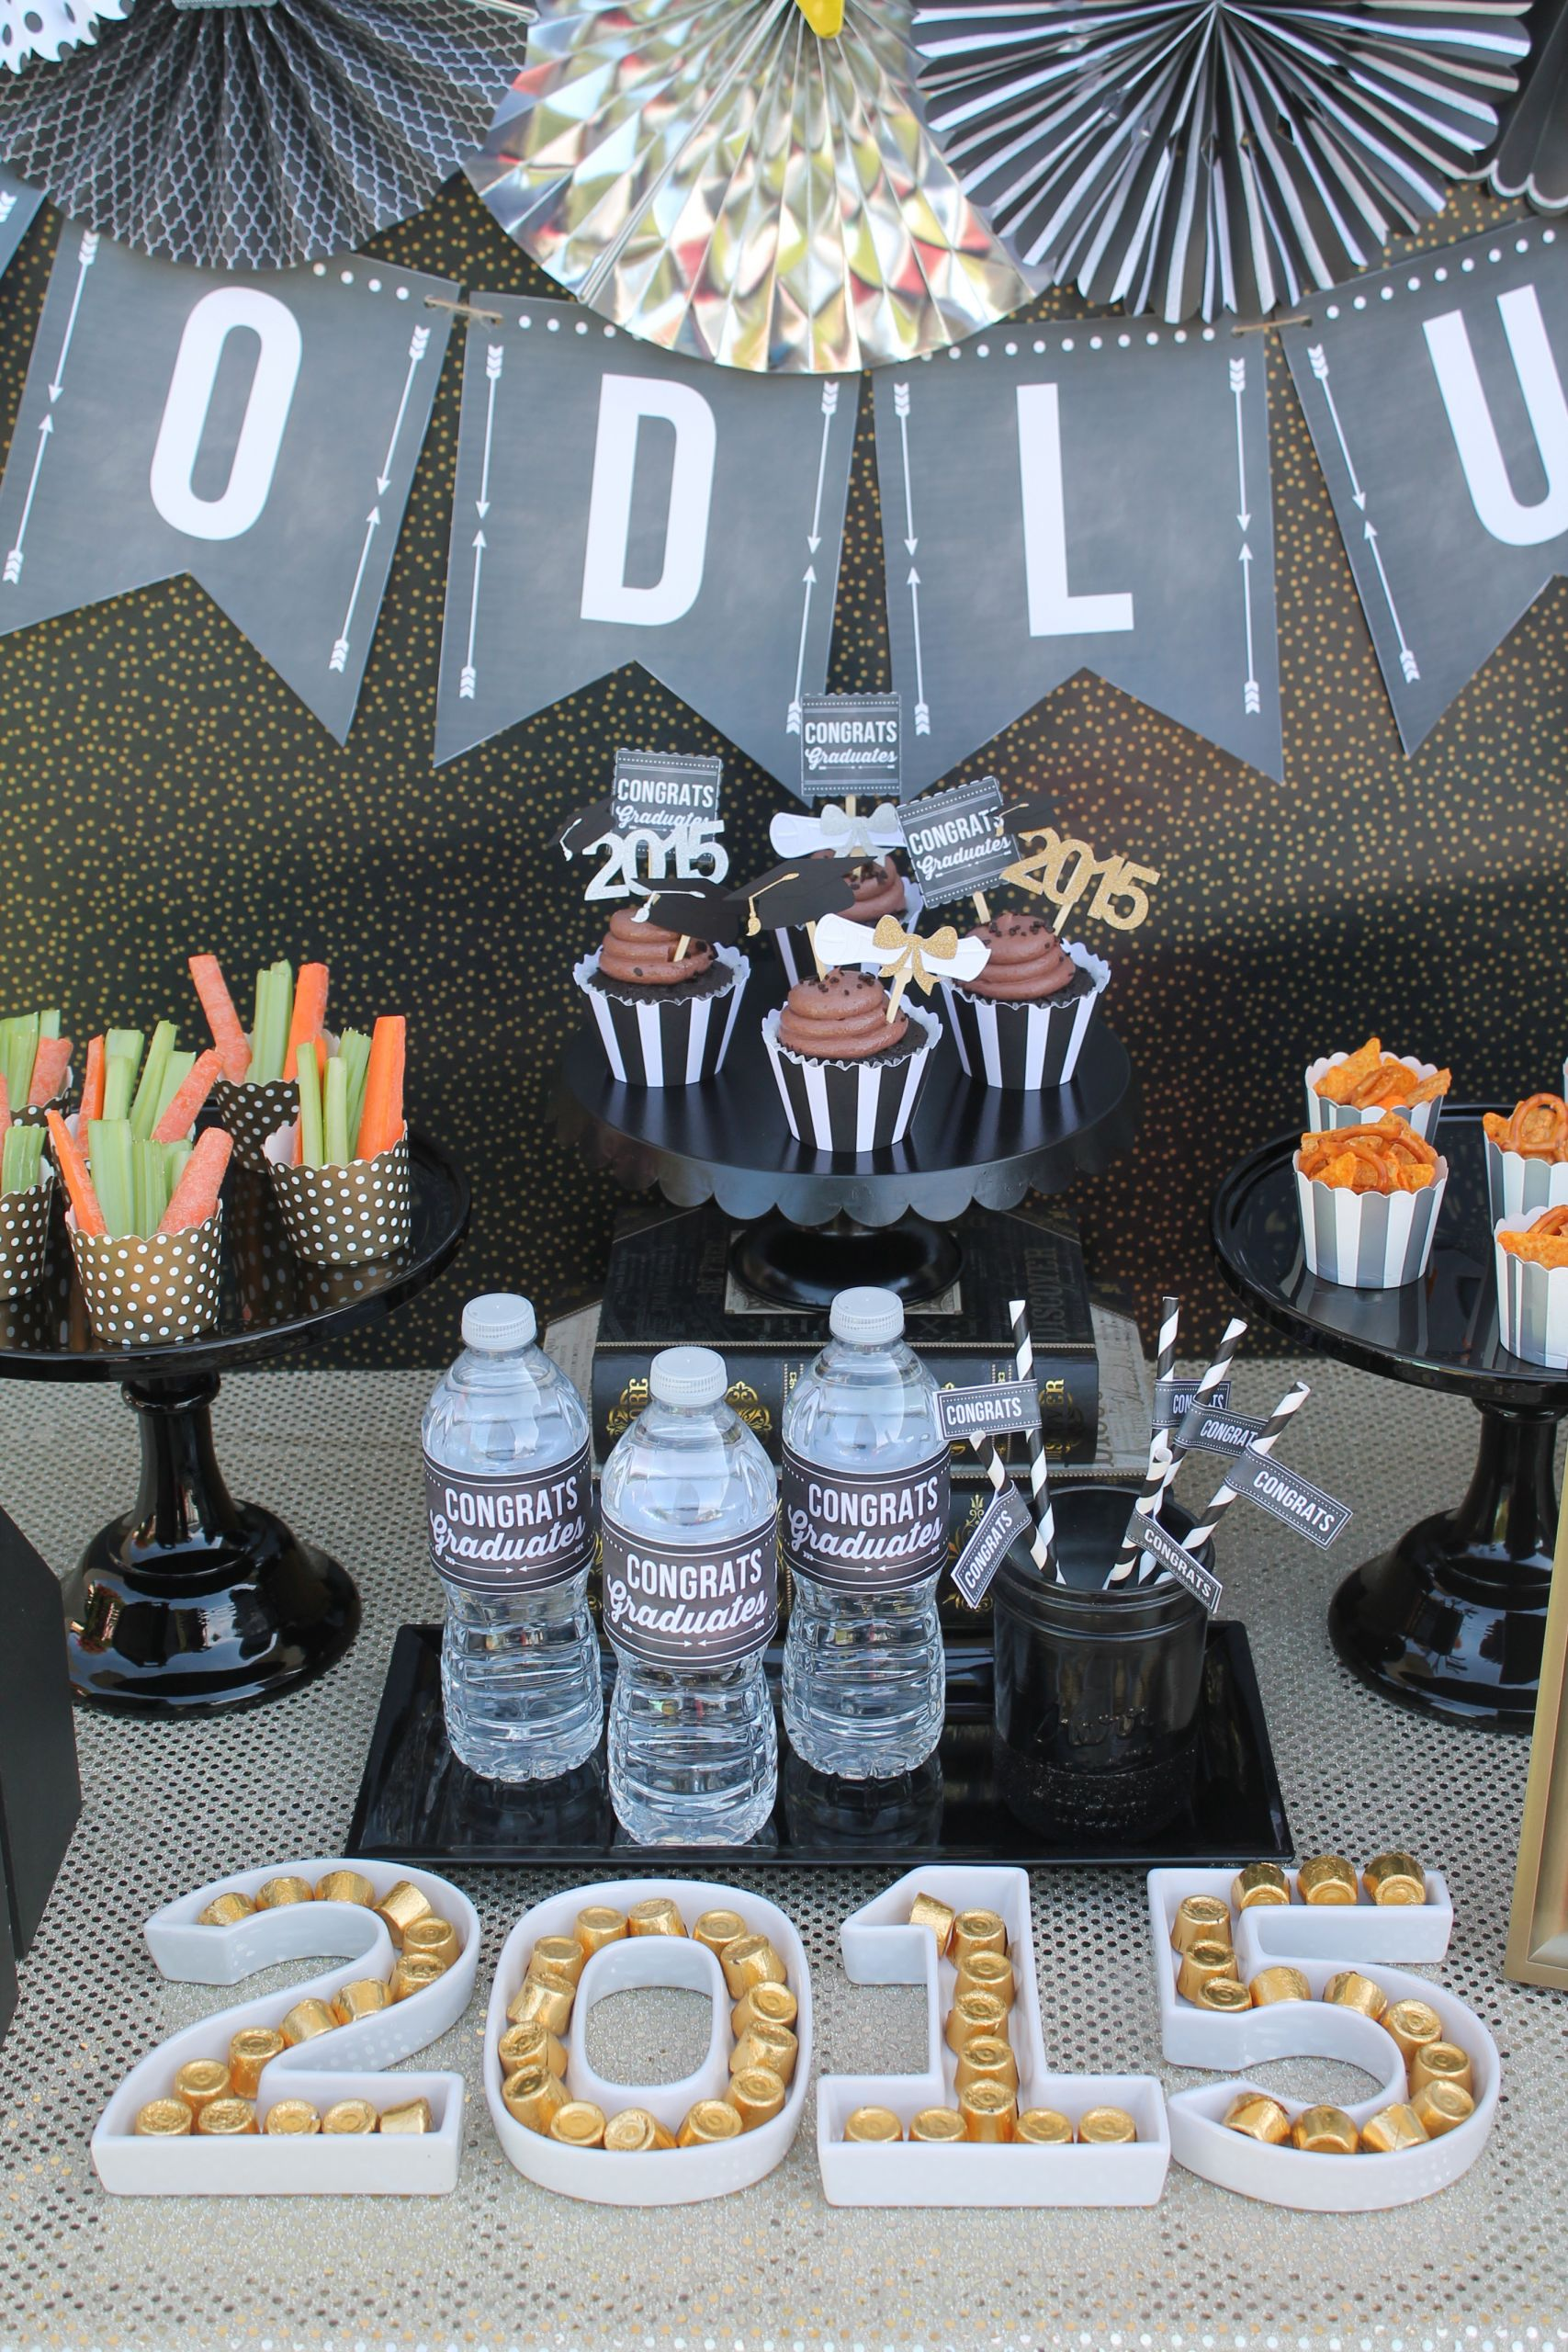 Table Decorations For Graduation Party Ideas  Graduation Party Ideas Free Printables